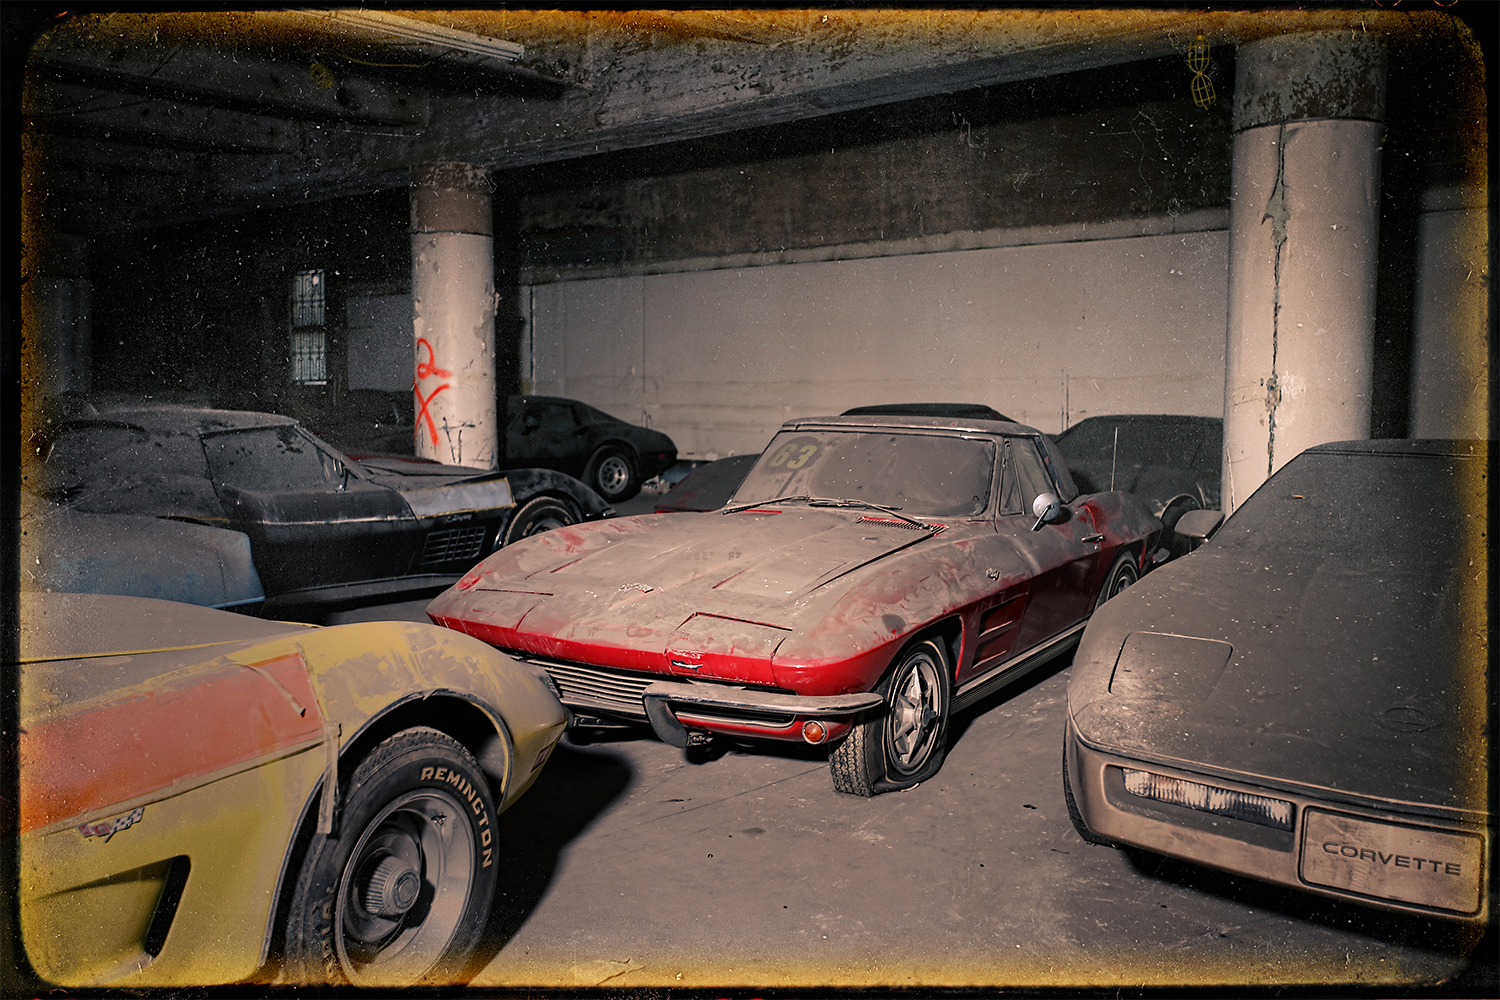 Peter Max Corvette Collection in a parking garage